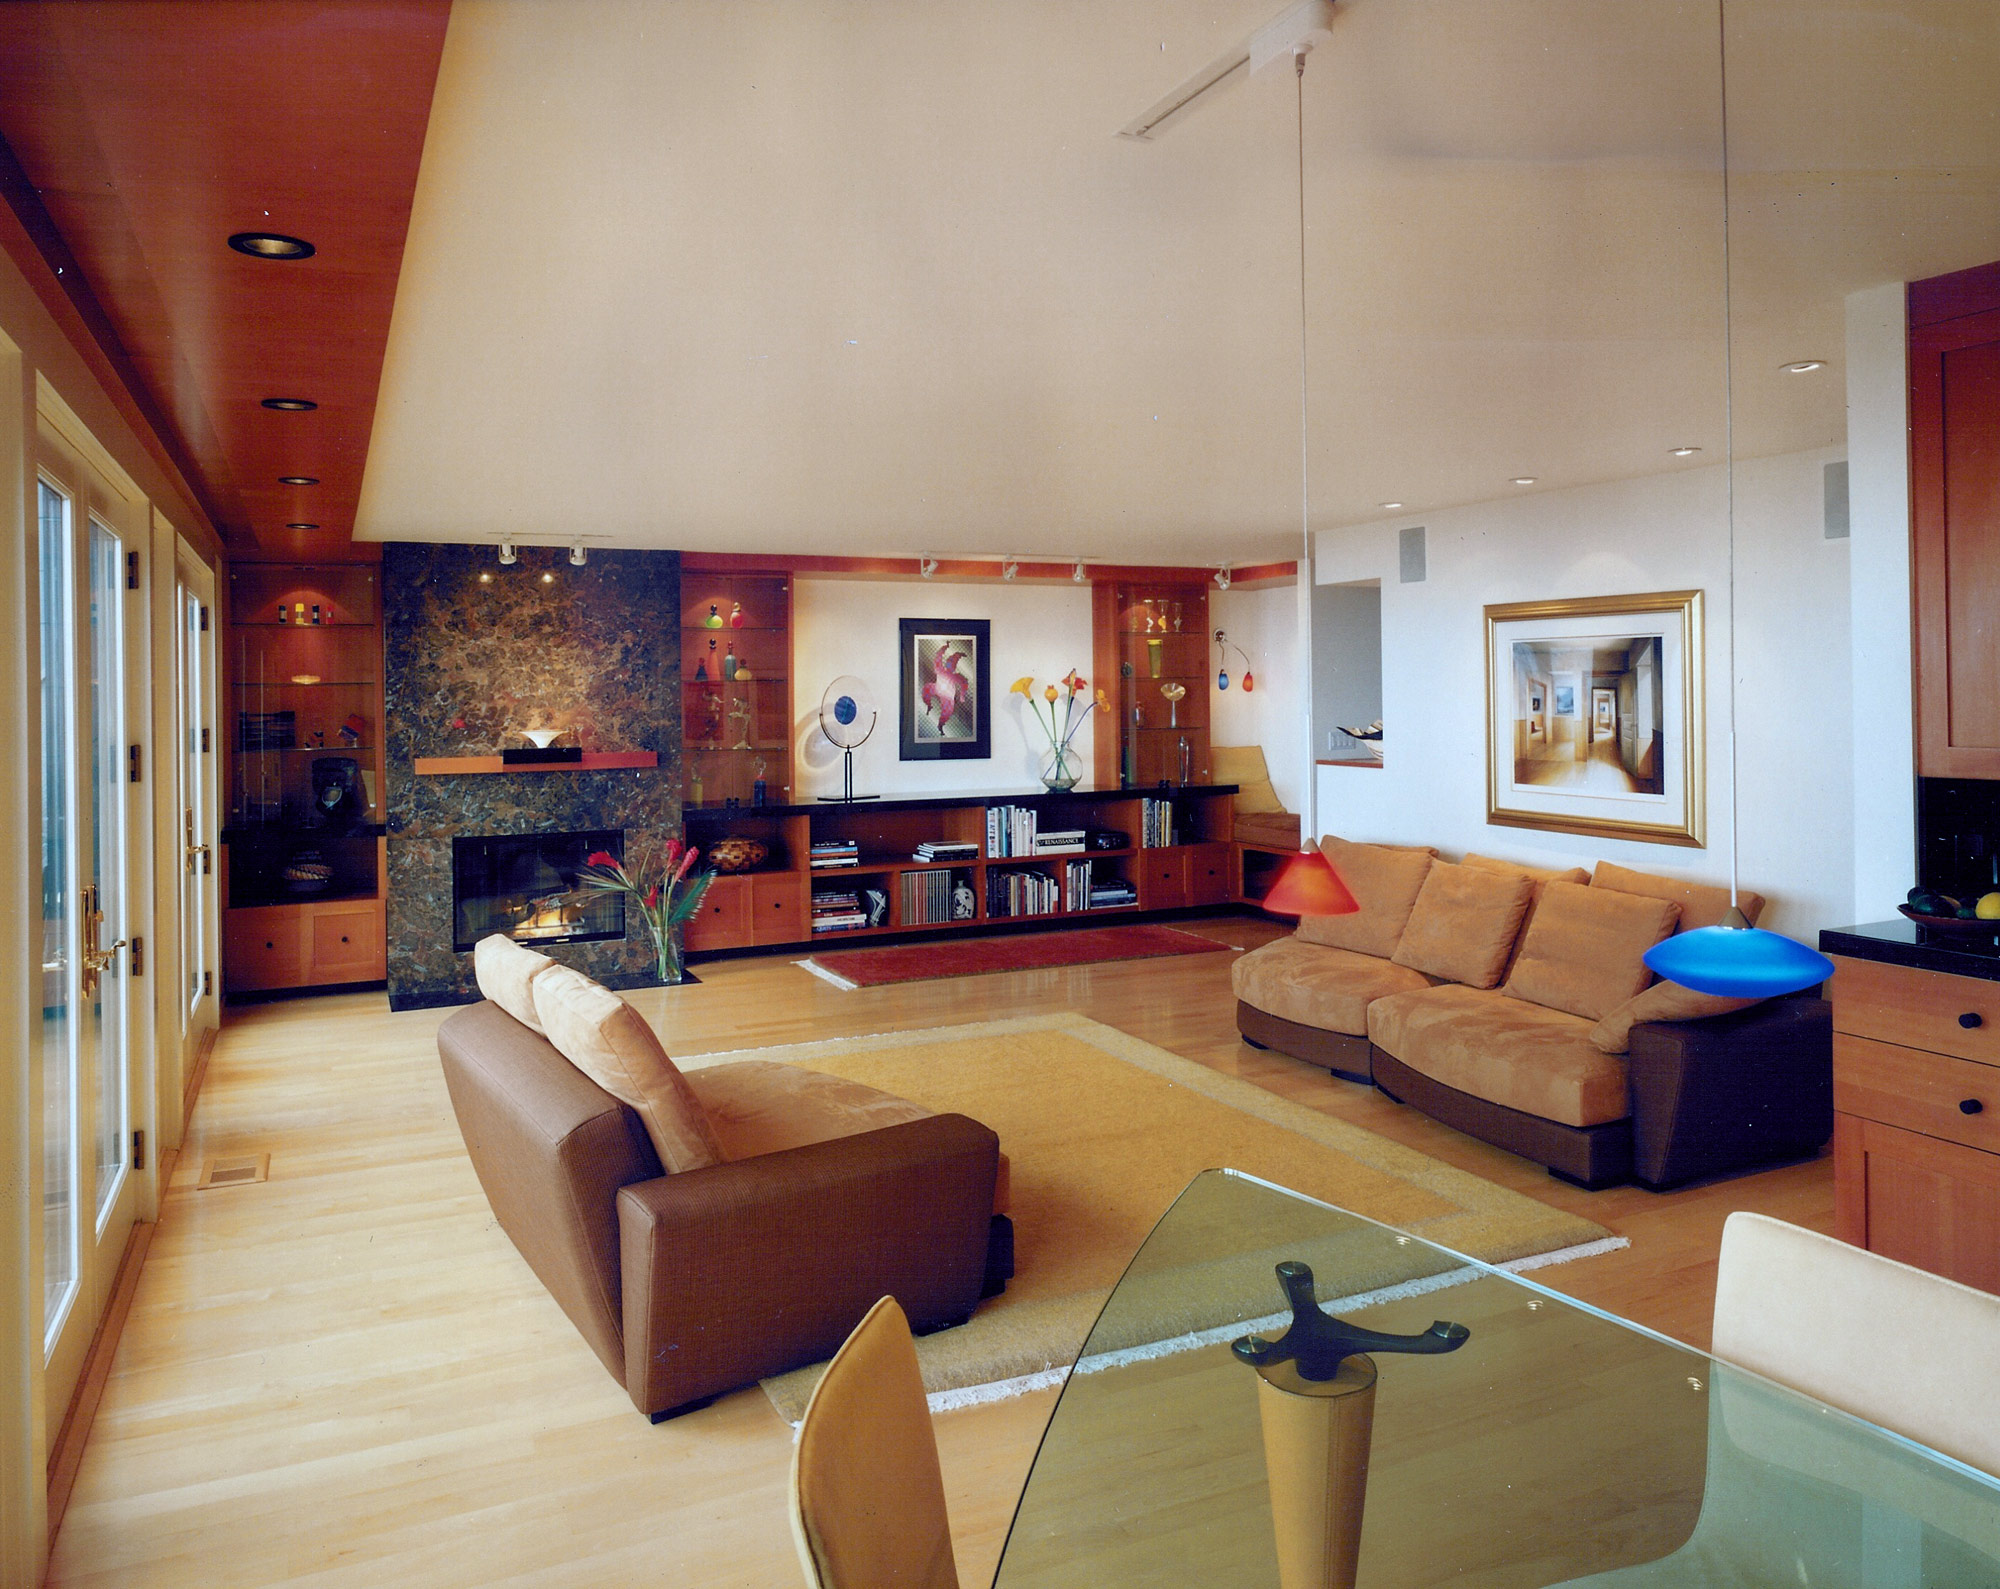 Kaplan-Architects-San Francisco-remodel-overall-living-room.jpg